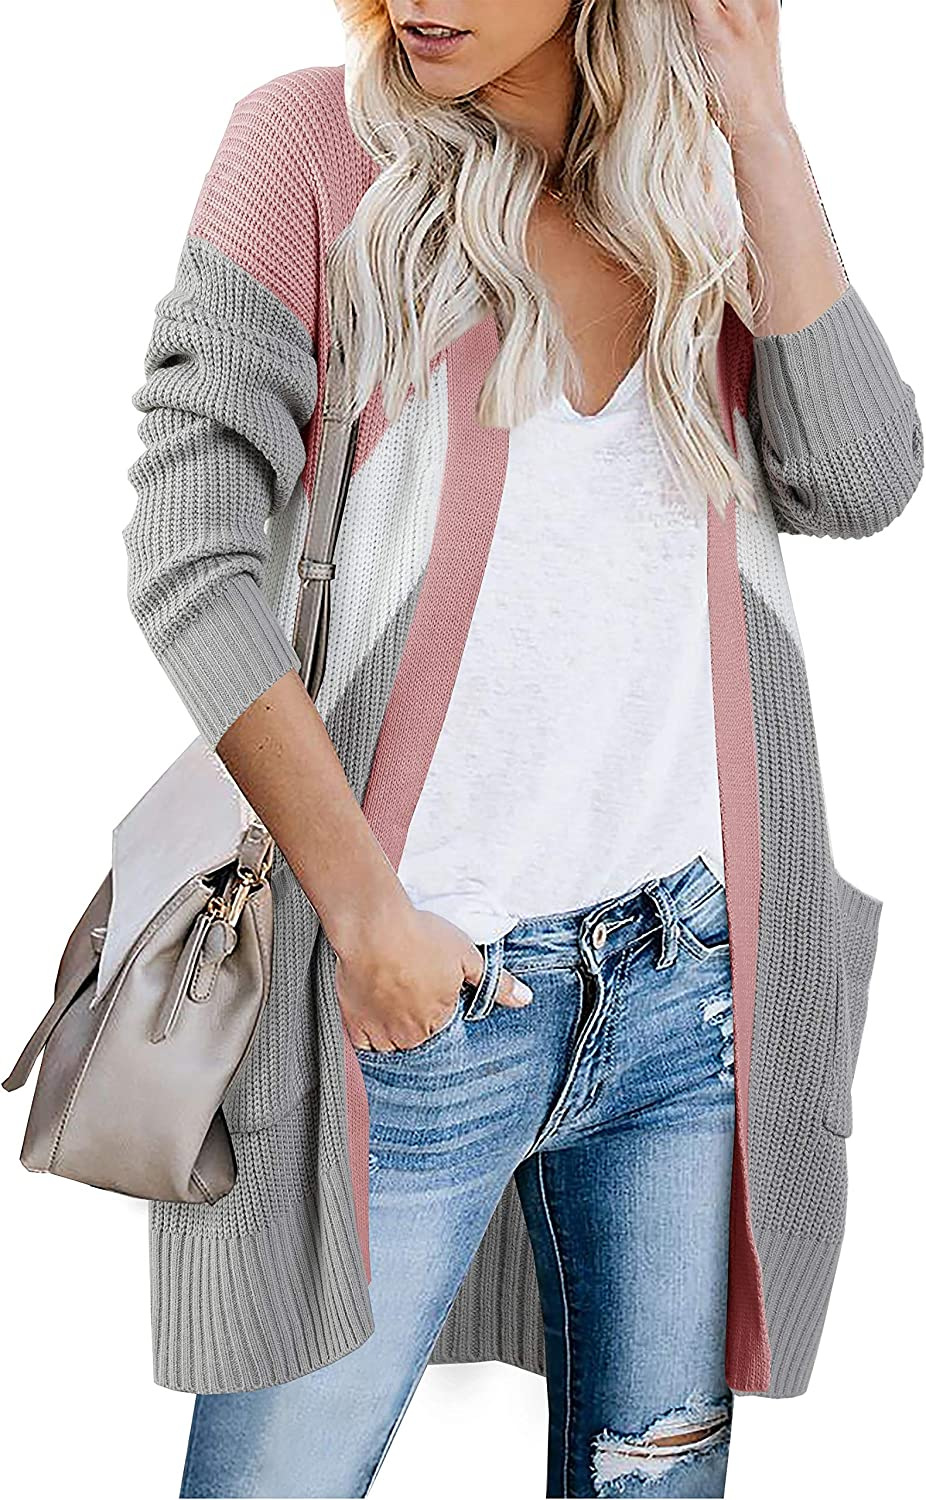 Womens Boho Color Block Cardigans Long Sleeve Open Front Knit Sweater Outwear with Pockets